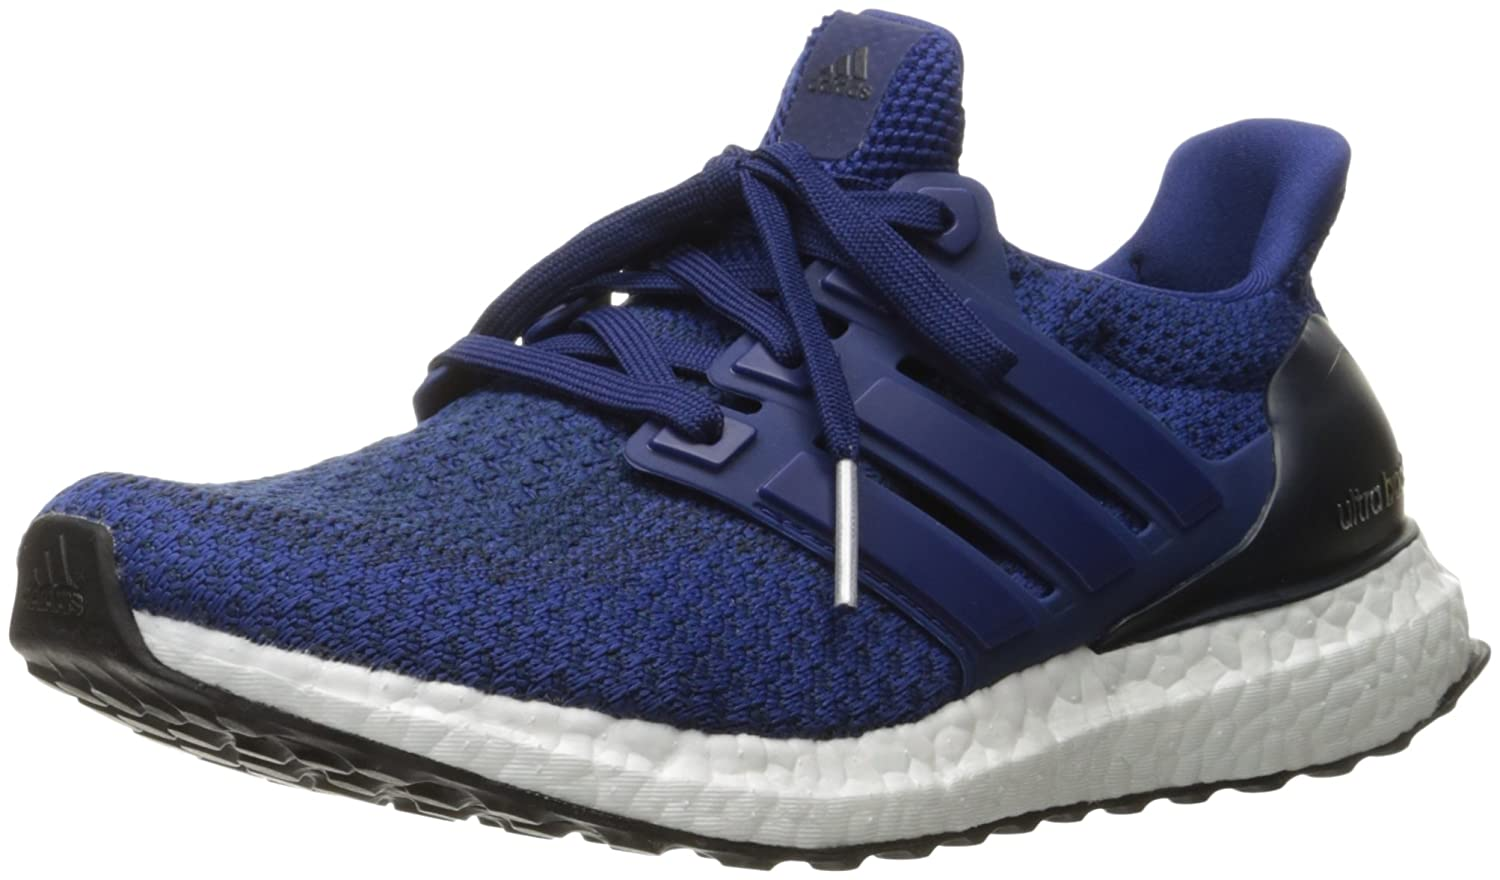 Unity Ink Unity Ink Dark Navy Adidas Performance Women's Ultraboost